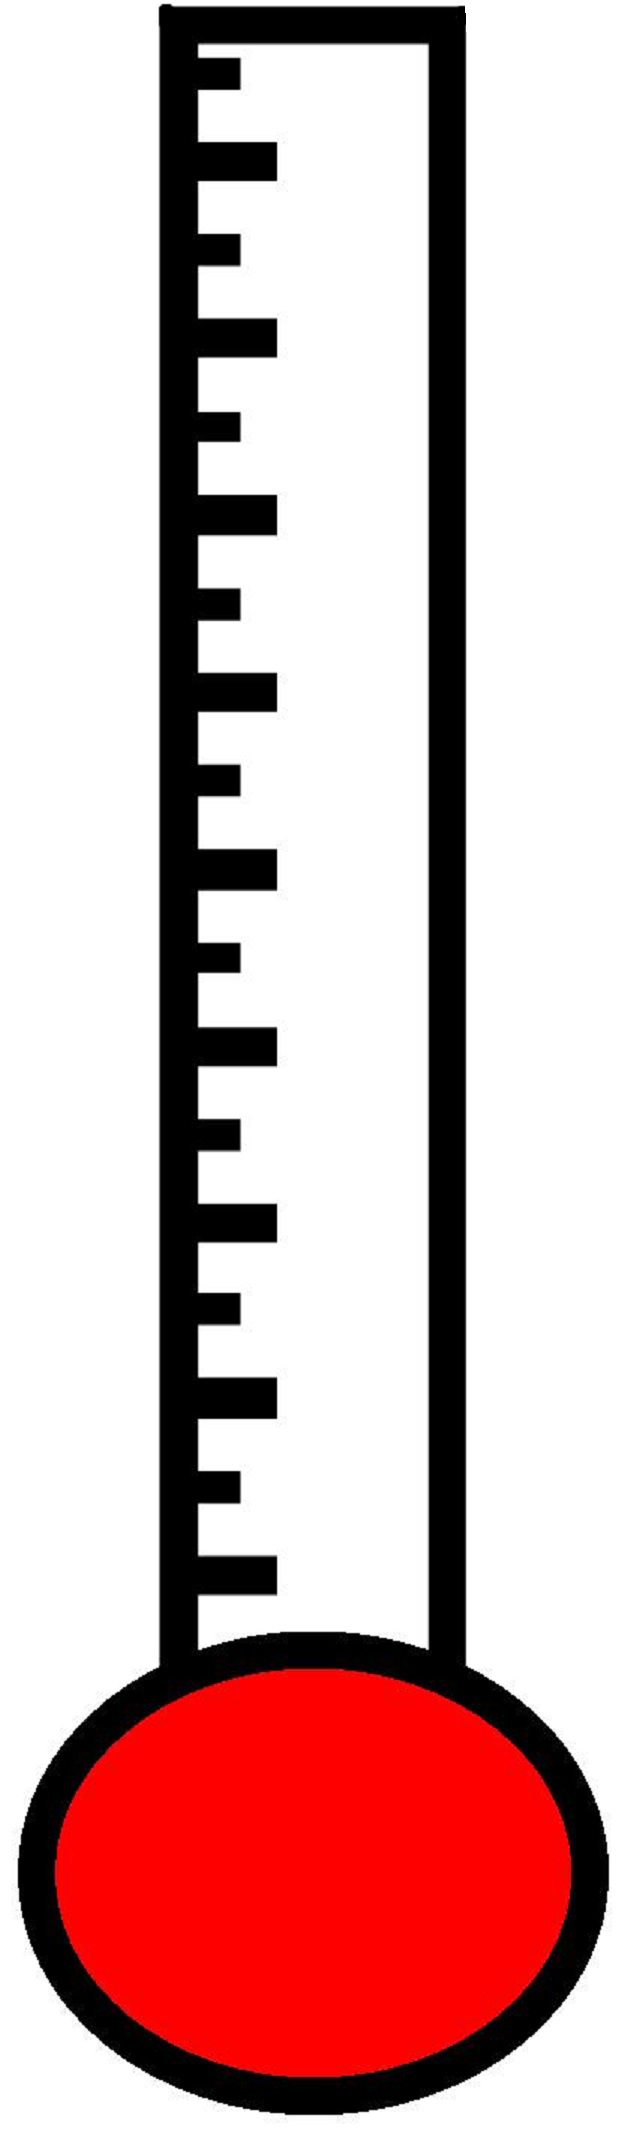 Blank Thermometer Clipart Clipart Suggest